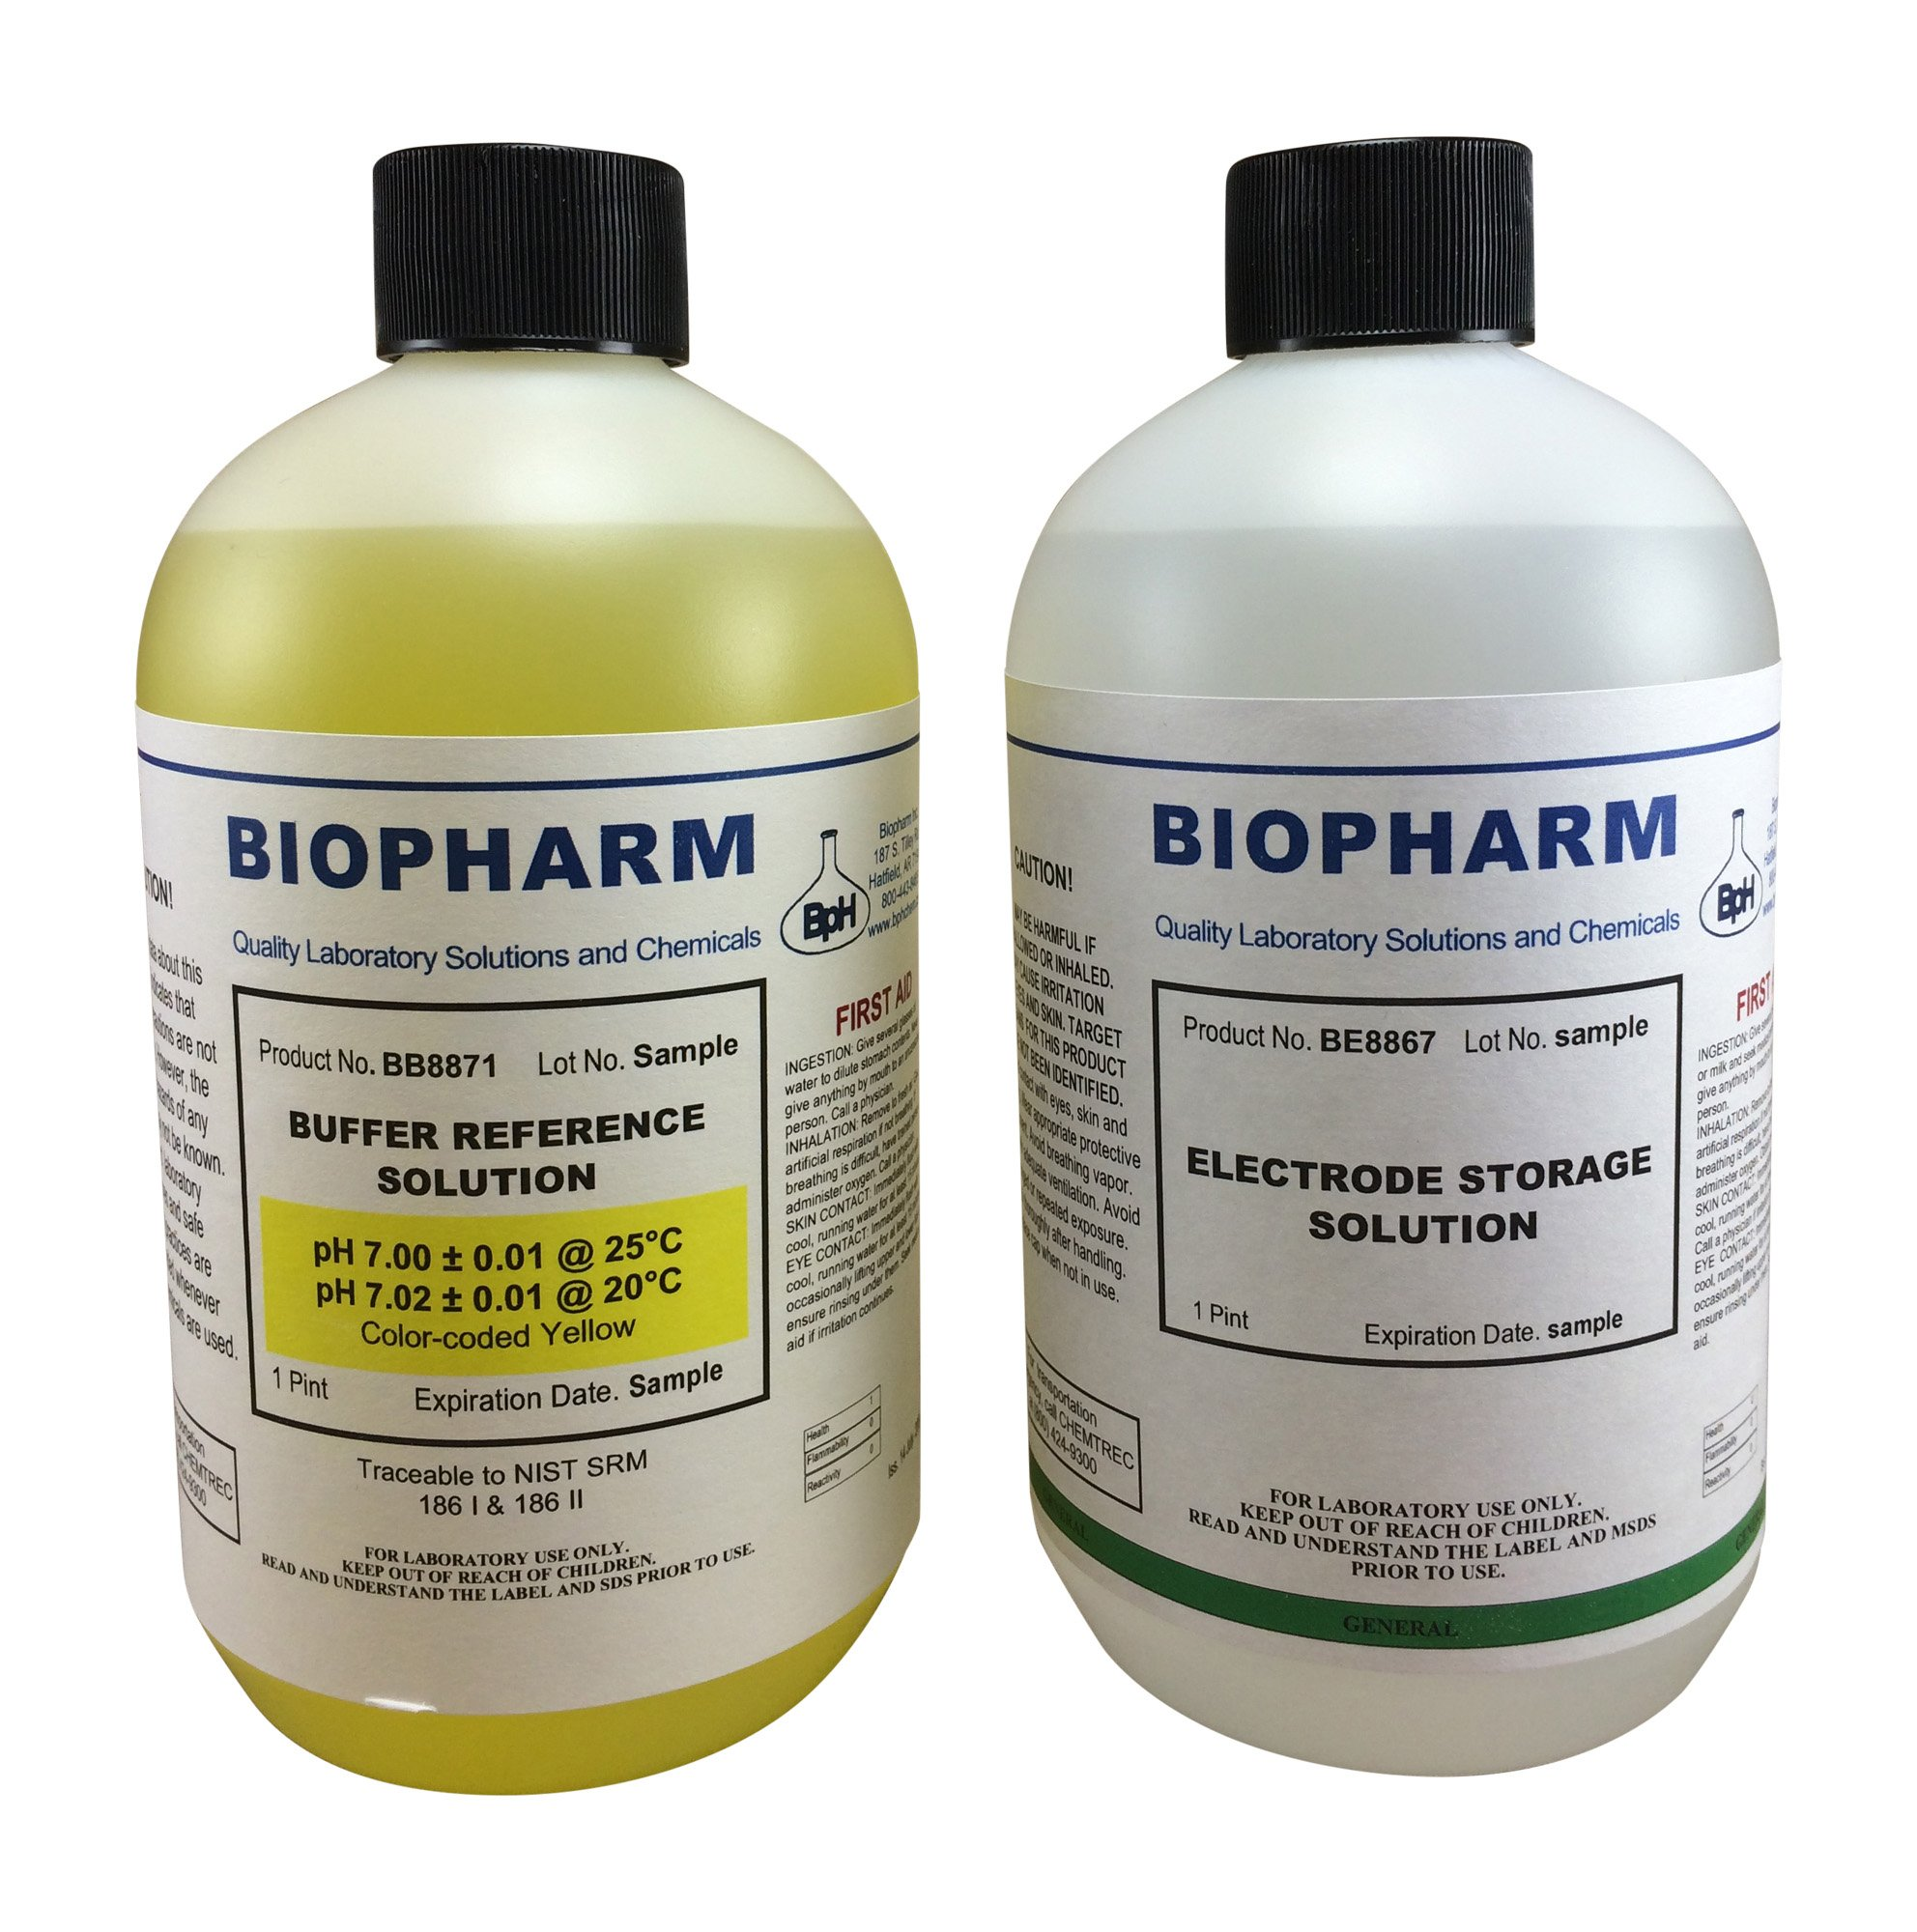 Biopharm pH Calibration Kit (2) 500 ml (16oz) Bottles pH 7.0 Buffer and Electrode Storage Solution NIST Traceable Reference Standard for All pH Meters by Biopharm